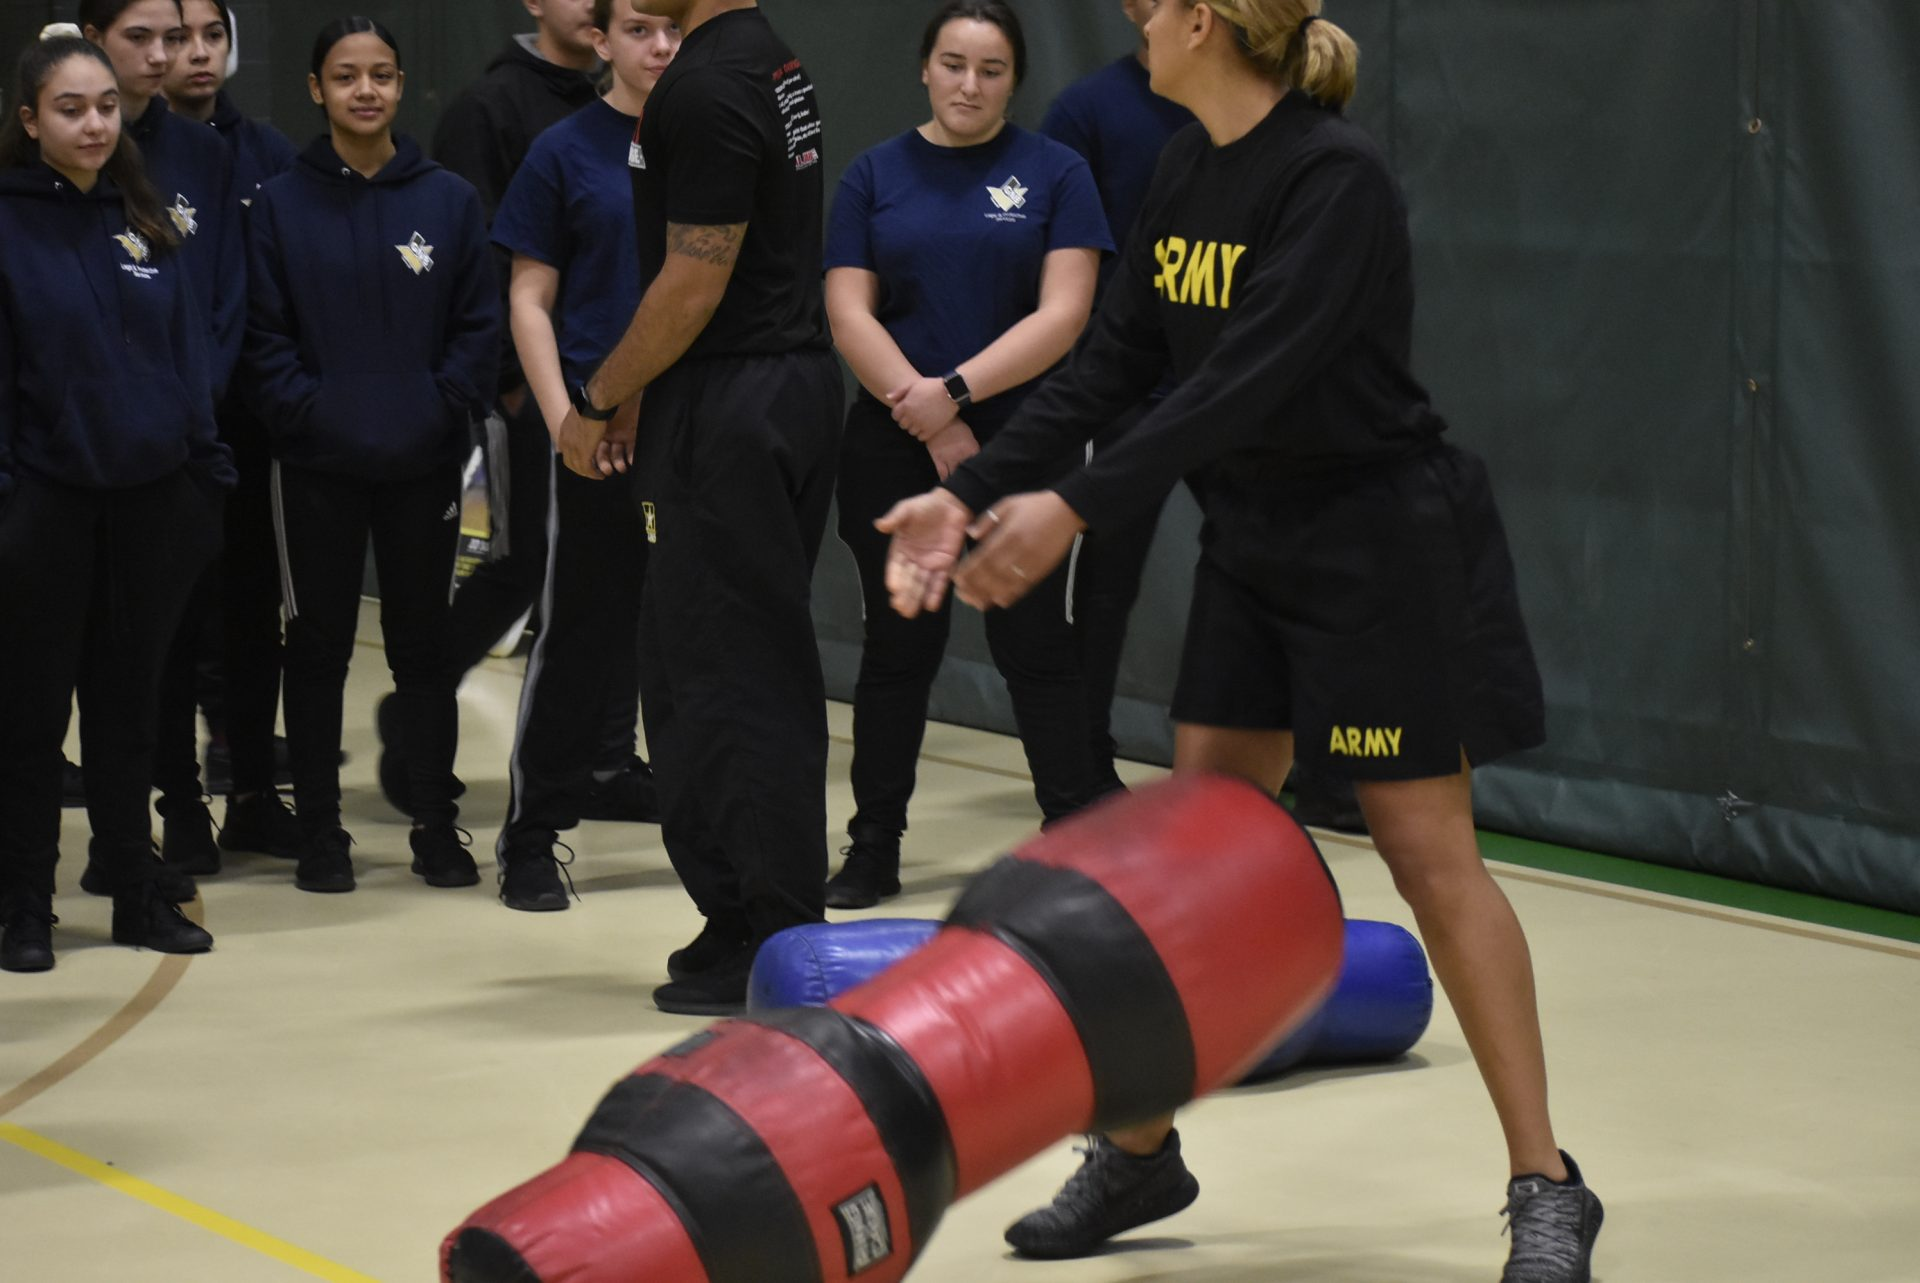 Army member rolling weights